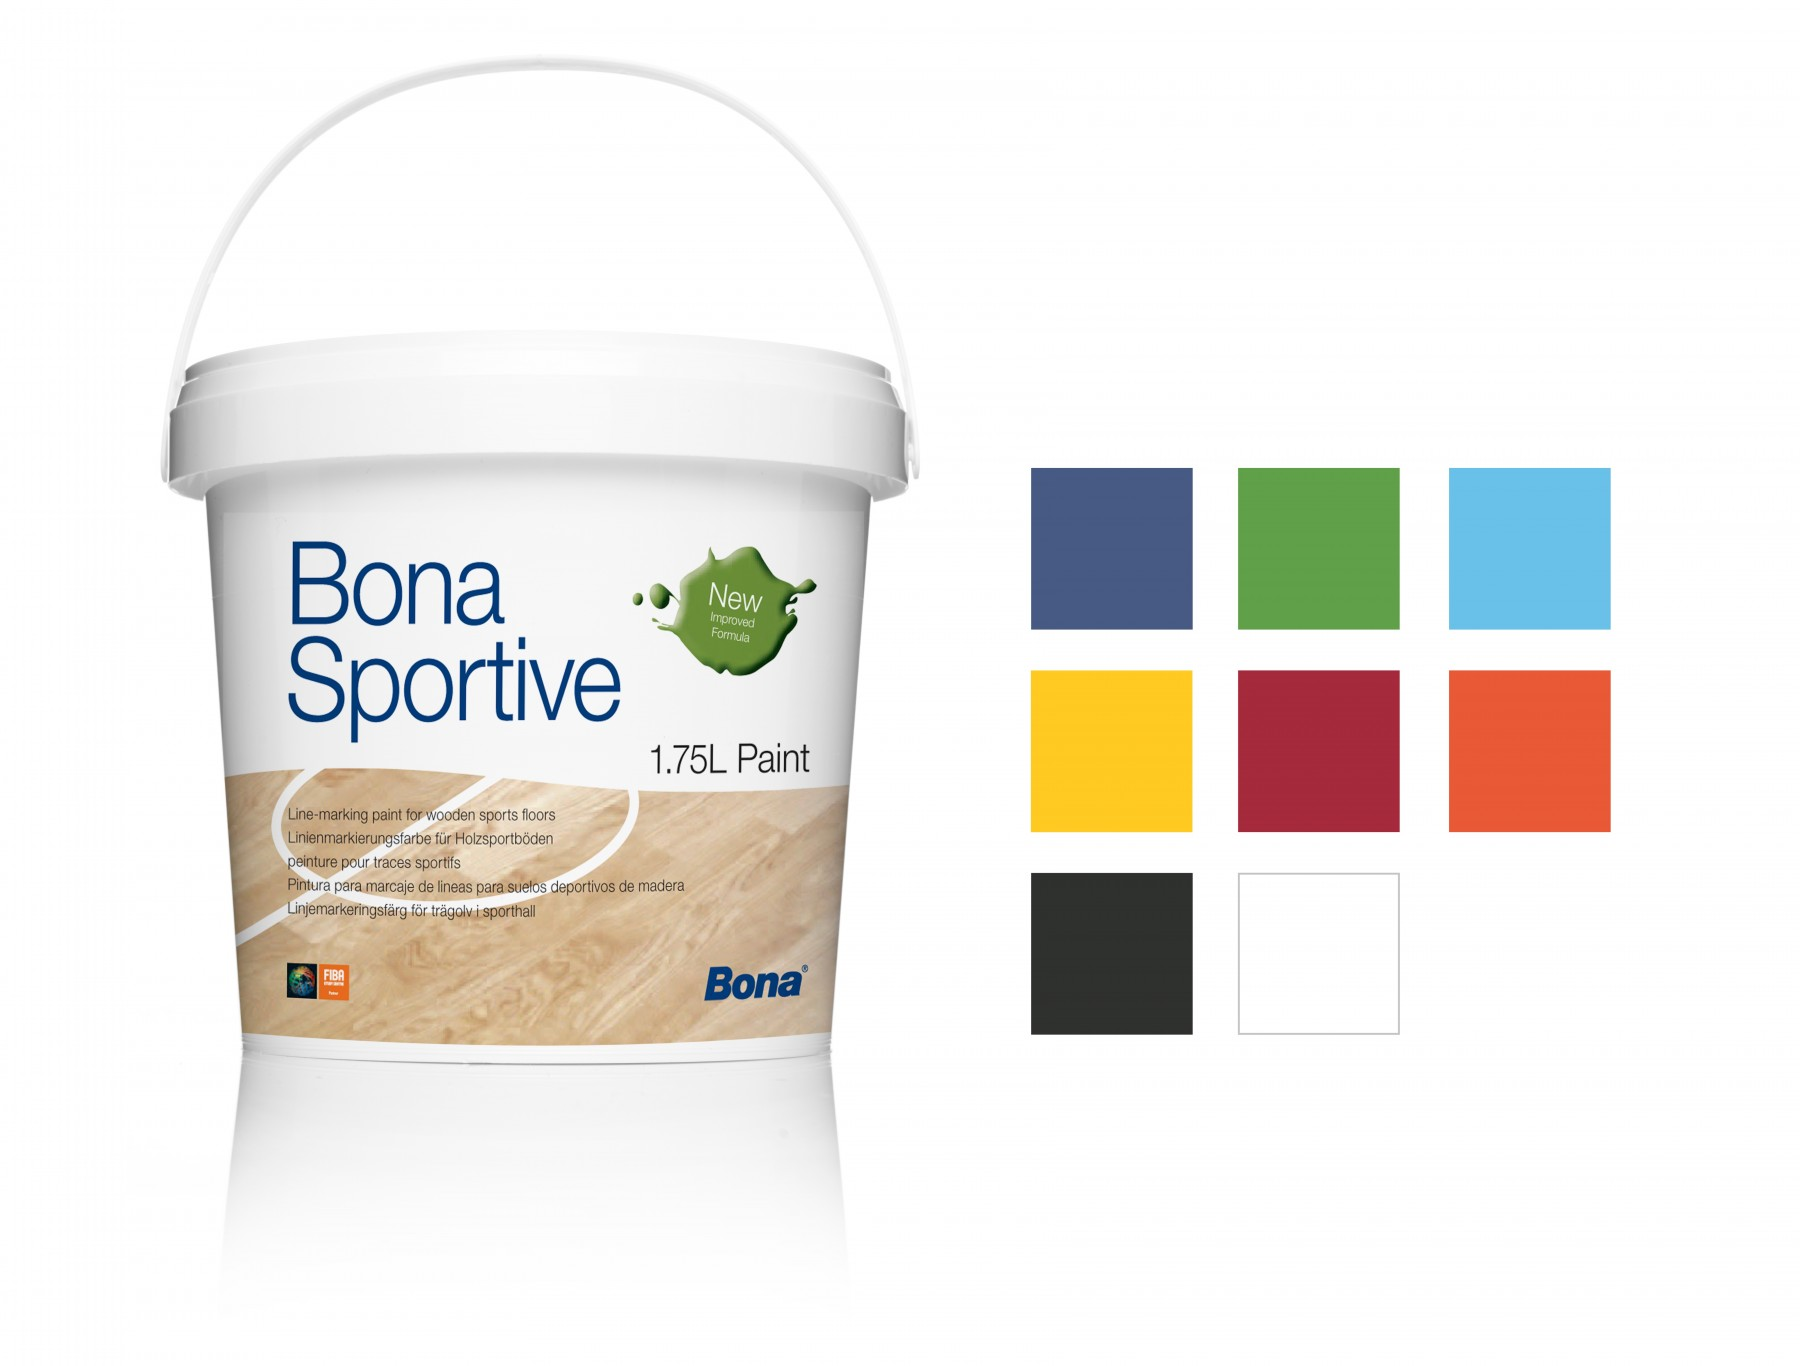 Bona Sportive Paint Green1,75L